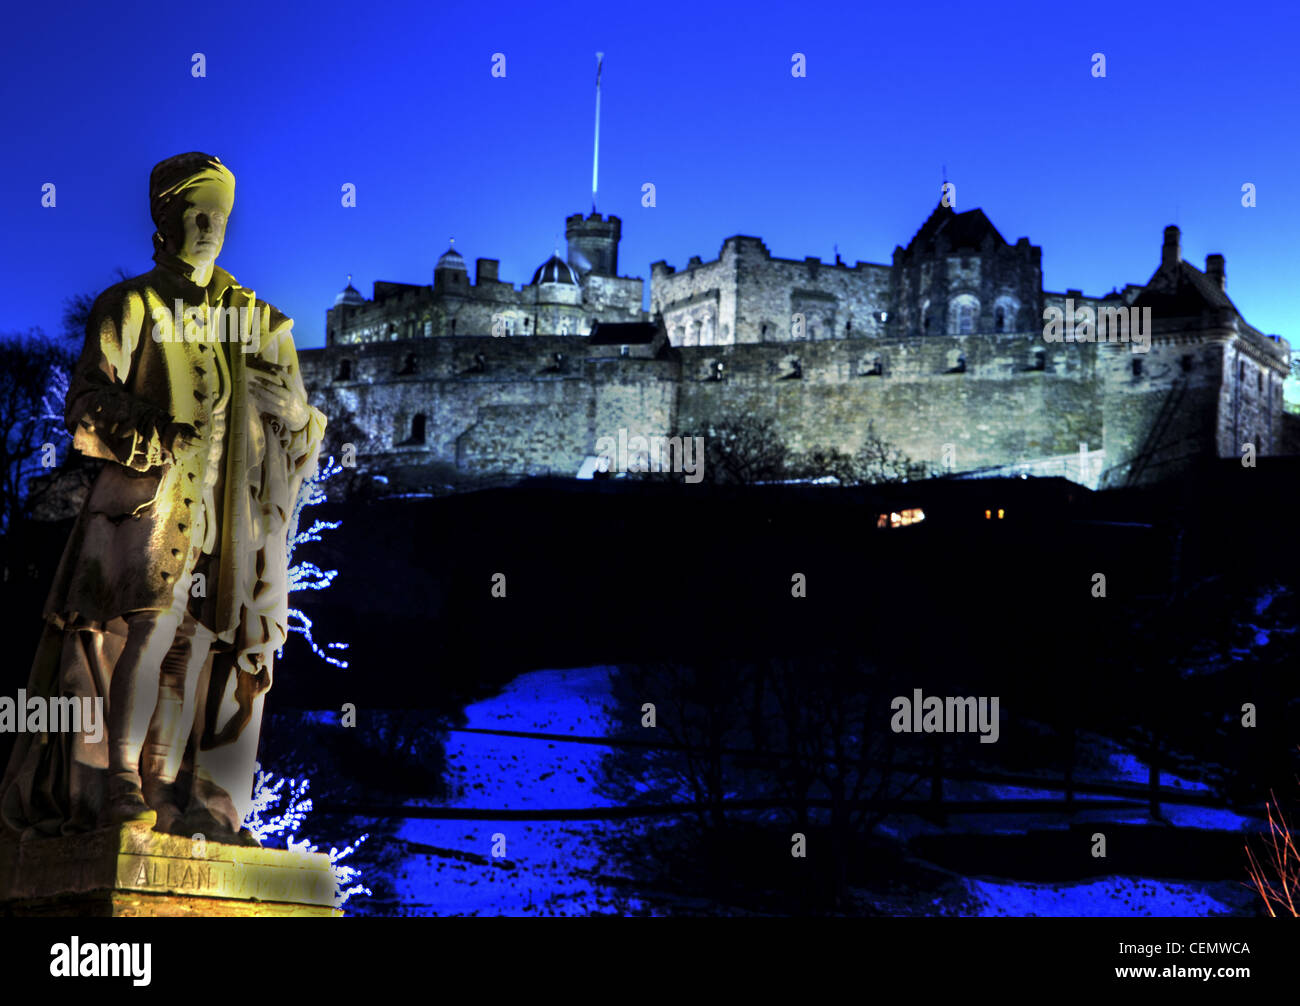 Allan,Ramsey,statue,&,Edinburgh,Castle,at,Dusk,just,before,night,fall,from,Princes,Street,Scotland,UK,gotonysmith,shot,nightshot,scottish,independance,independence,home,rule,devolution,parliament,SNP,national,party@Hotpixuk,GotonySmith,hilltop,historic,history,historical,icon,iconic,kingdom,landmark,landmarks,lowlands,lothian,medieval,monument,old,outcrop,rock,rocky,Royal,family,scotch,scotland,scots,scottish,sight,sights,scenic,sightseeing,skies,sky,skyline,summer,sun,sunny,sunshine,stronghold,tour,tattoo,tourism,tourists,town,towns,towering,uk,united,white,unesco world heritage,Unesco,old town,Edinburgh Castle,dramatic sky,moody,mody sky,dramatic sky,summer,blue,blue sky,lush,green,trees,vegetation,clouds,Edinburg,Castel,Scots,Scottish,scotland,nationalistic,stone,tour,travel,tourist,attraction,Royal Family,buy,pictures,of,Edinburgh,Buy Pictures of,Buy Images Of,Edinburgh Castle